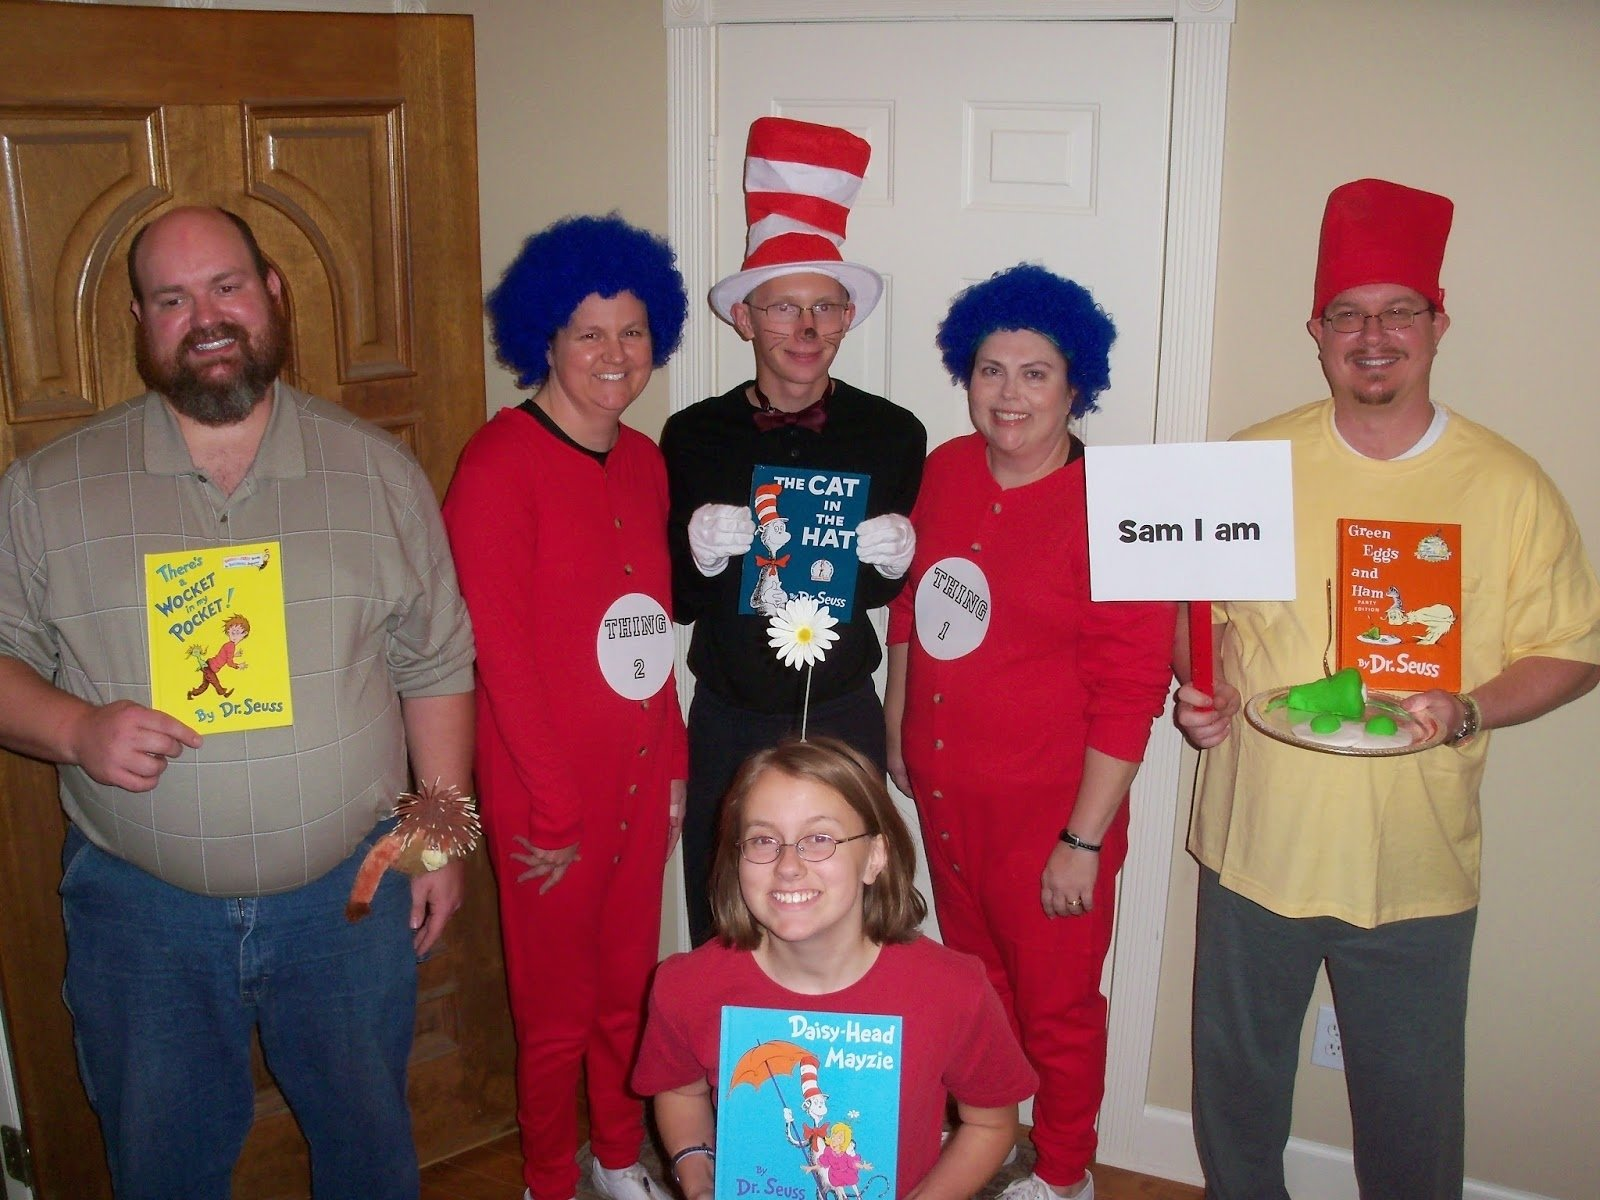 10 Best Dr Seuss Characters Costumes Ideas everybodys aunt andi halloween costume and party ideas dr seuss 2